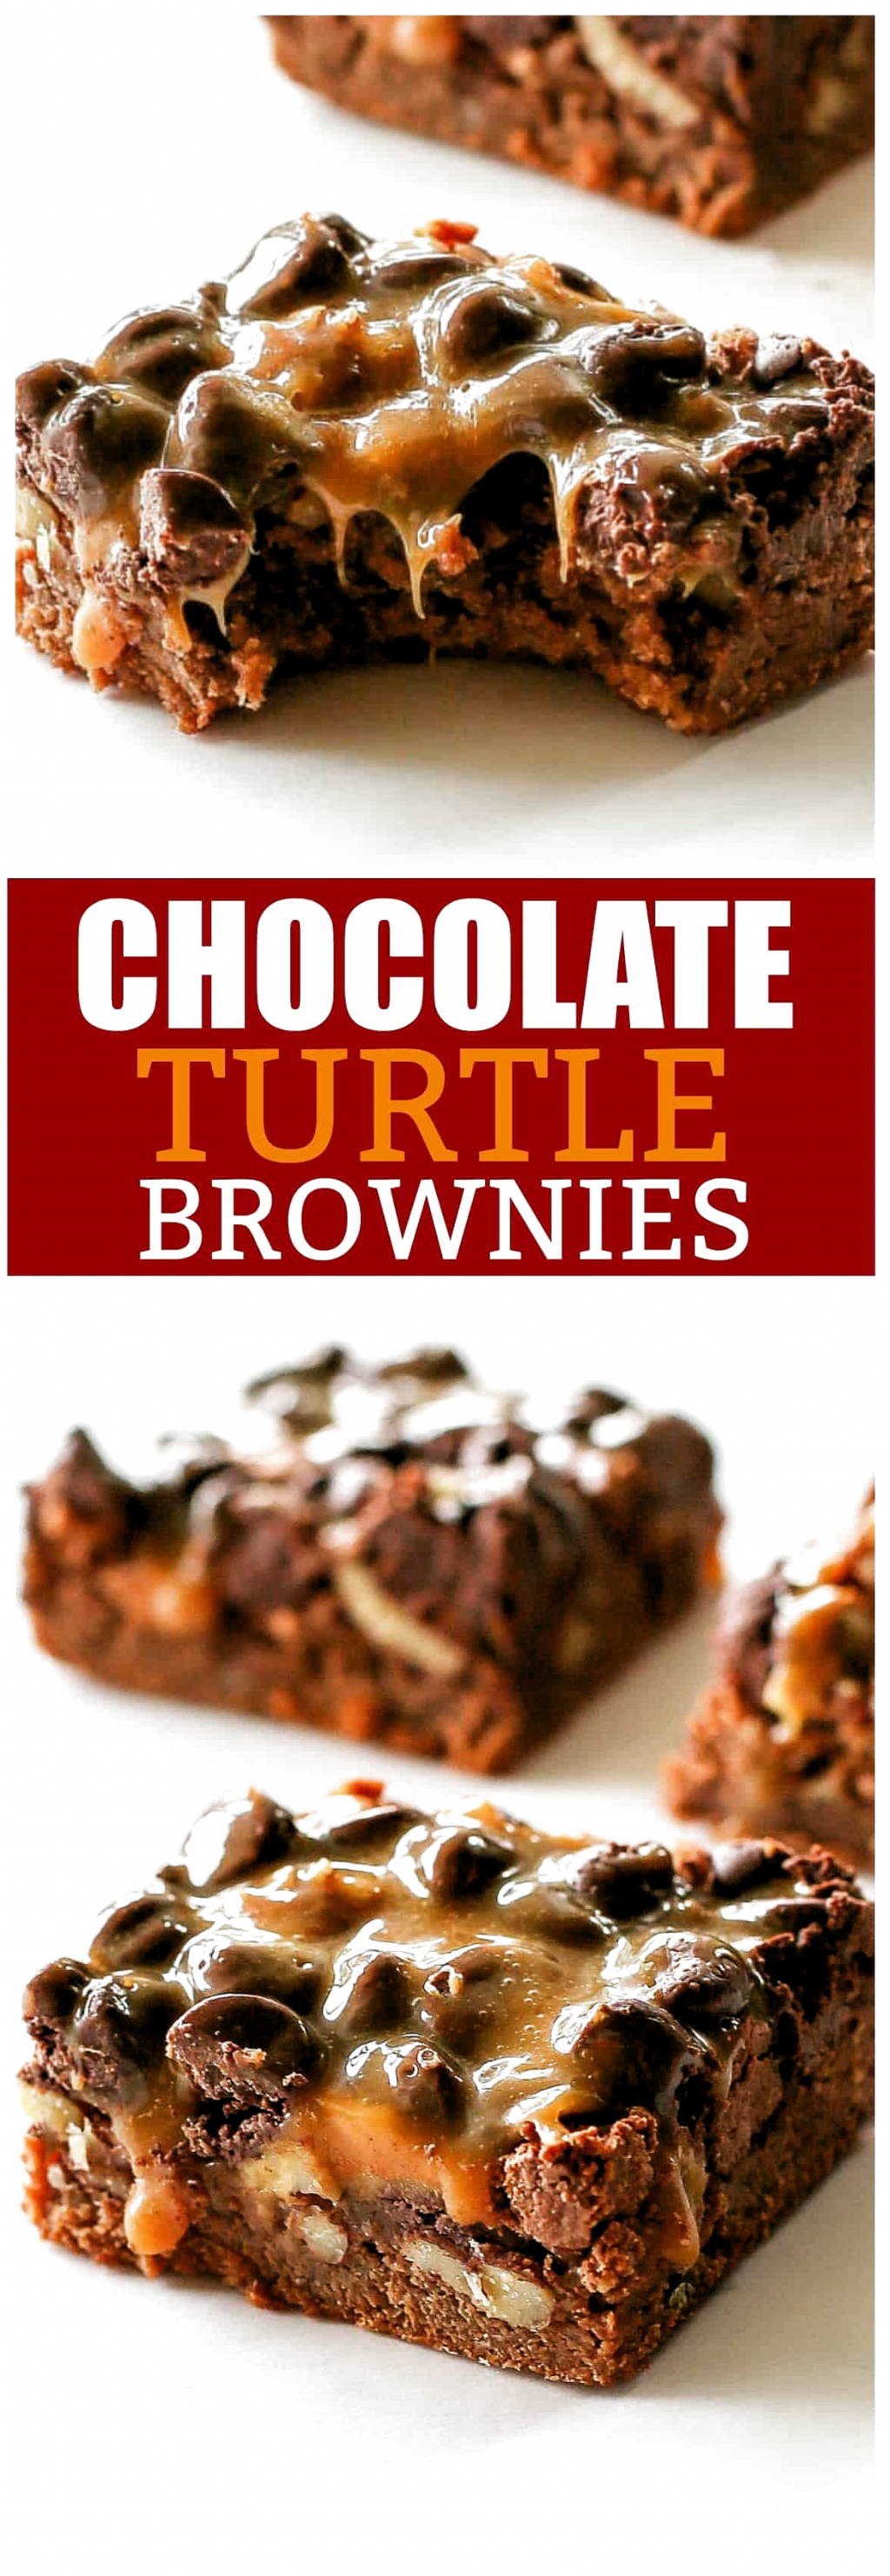 Chocolate Turtle Brownies are rich chocolate brownies with gooey caramel, nuts, and more chocolate. If you need a dessert for a crowd, here you go! #turtlebrownies Chocolate Turtle Brownies are rich chocolate brownies with gooey caramel, nuts, and more chocolate. If you need a dessert for a crowd, here you go!